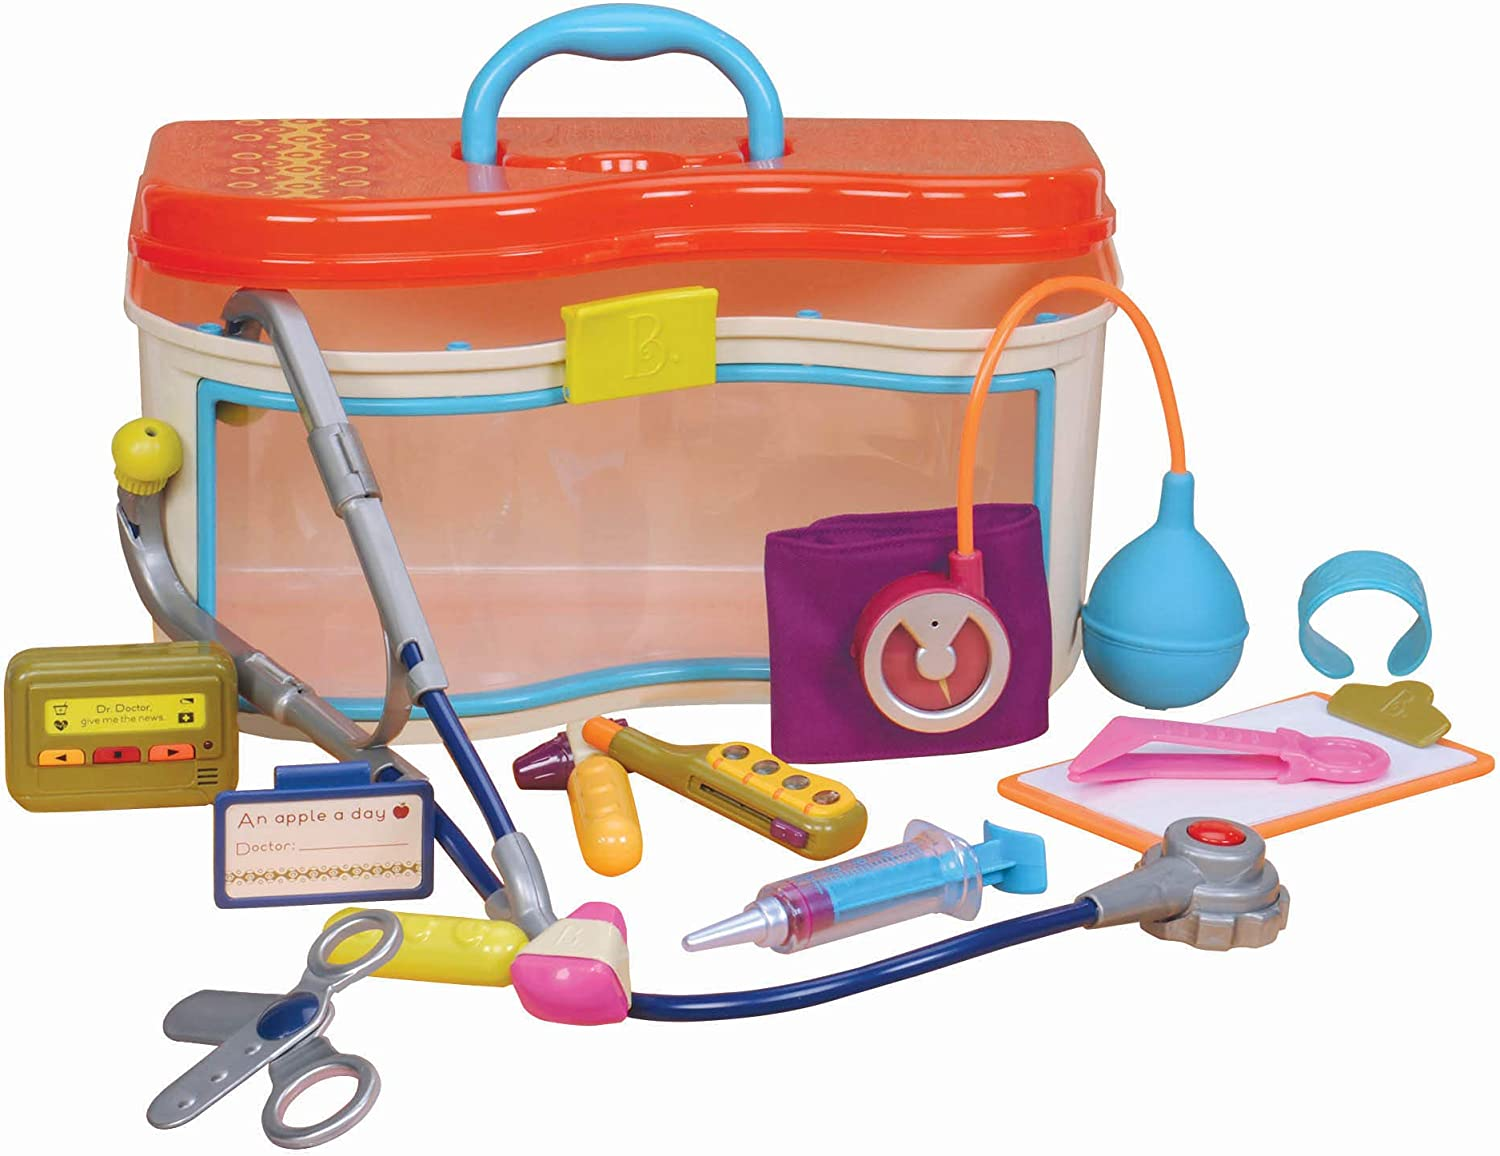 B Doctor Toy Deluxe  Kit for Toddlers Pretend Play Dr toys by Battat B